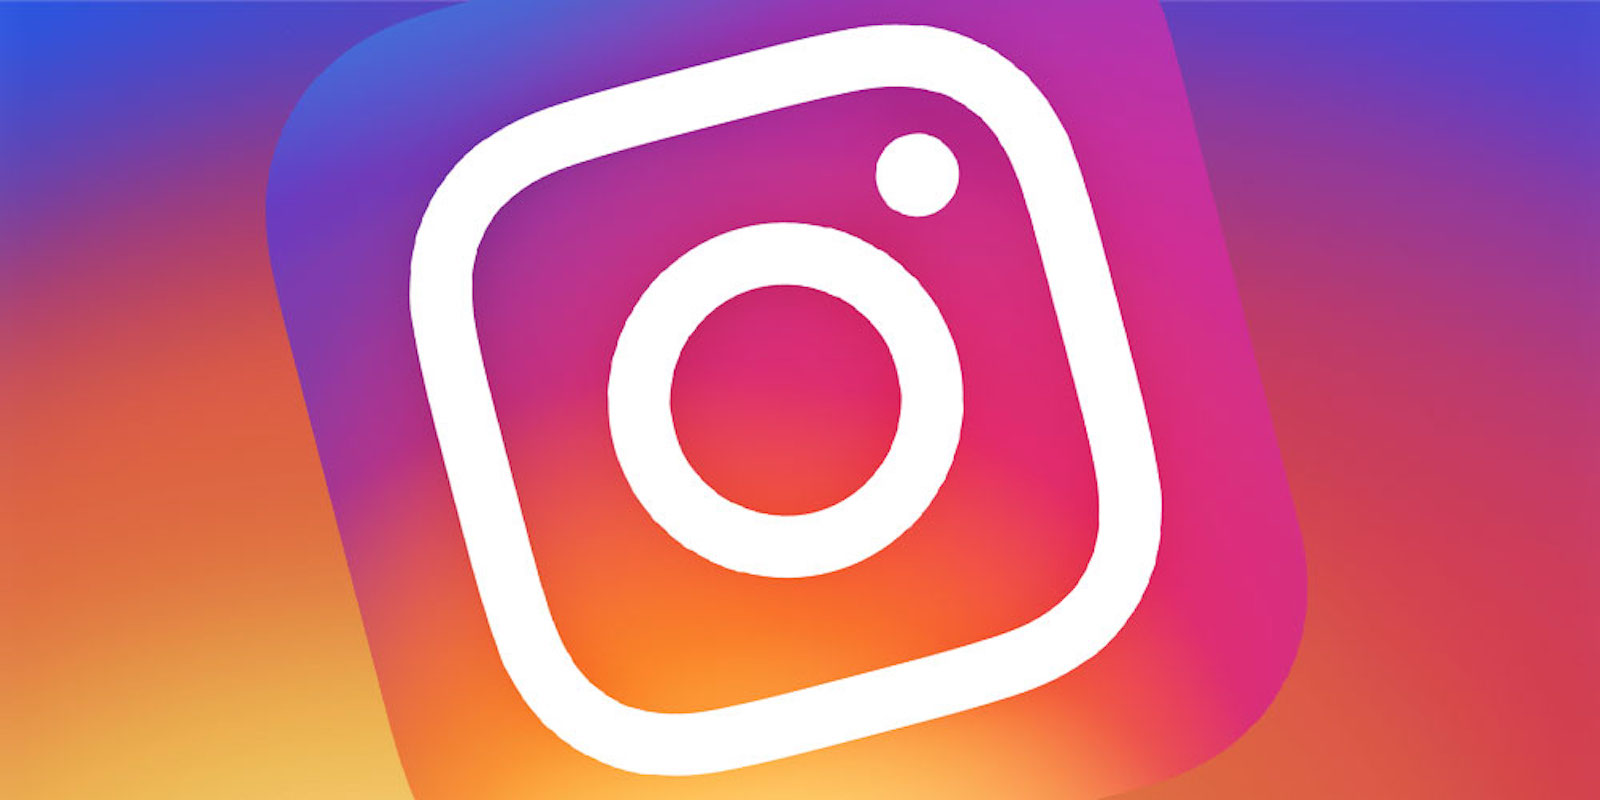 The latest Instagram update has removed support for iPhone